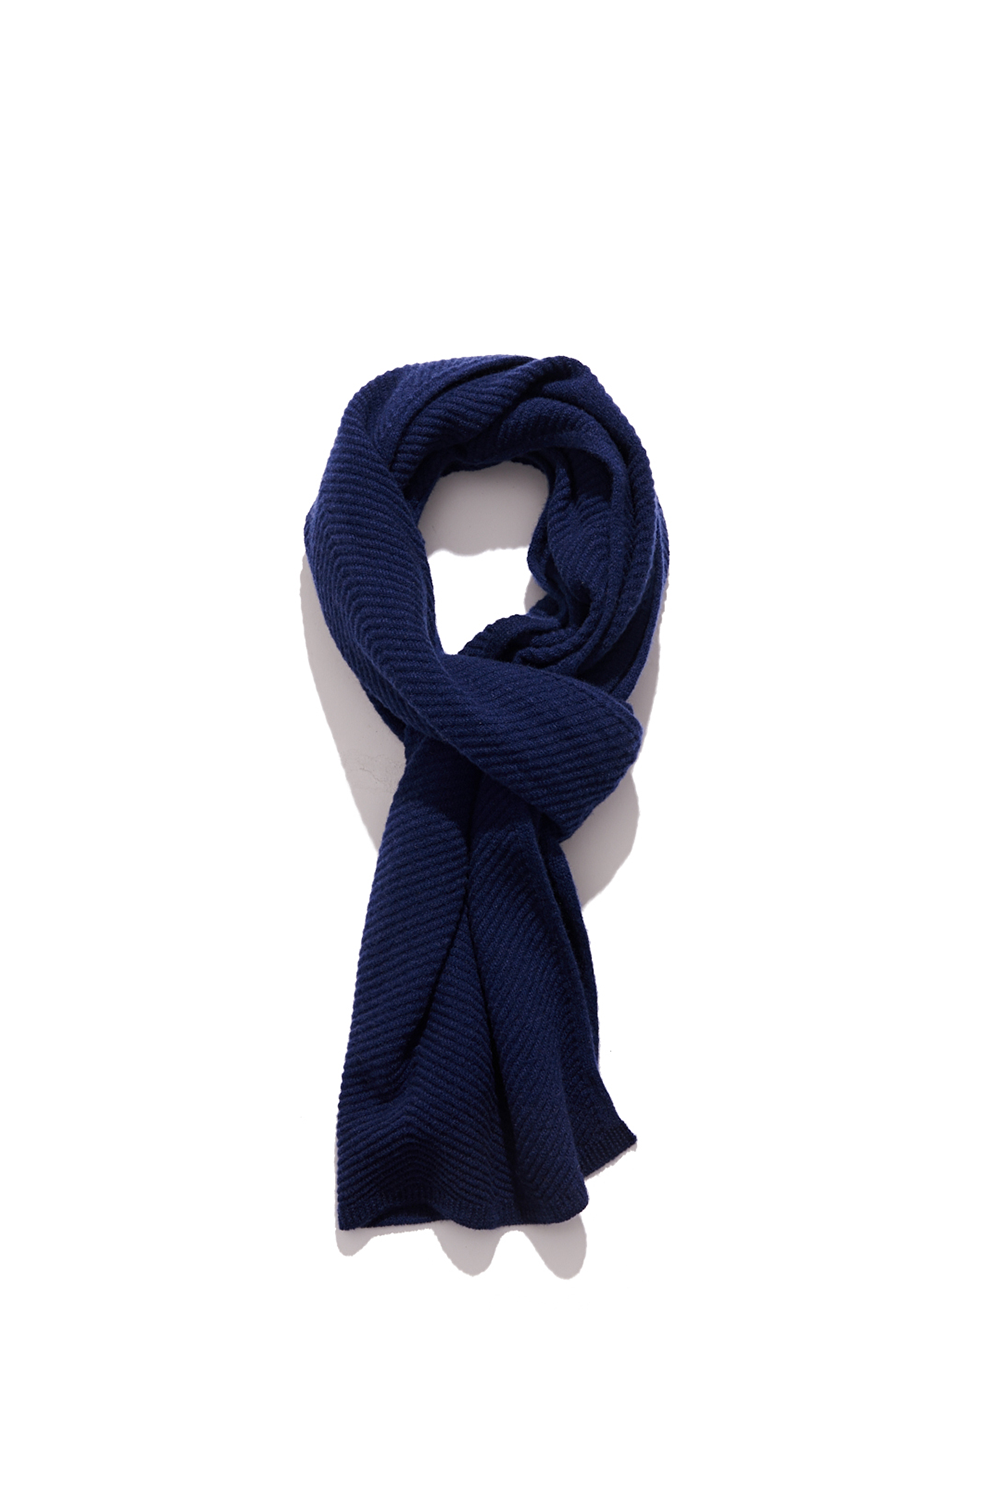 Premium pure cashmere100 whole-garment knitting shawl and scarf - Royal navy